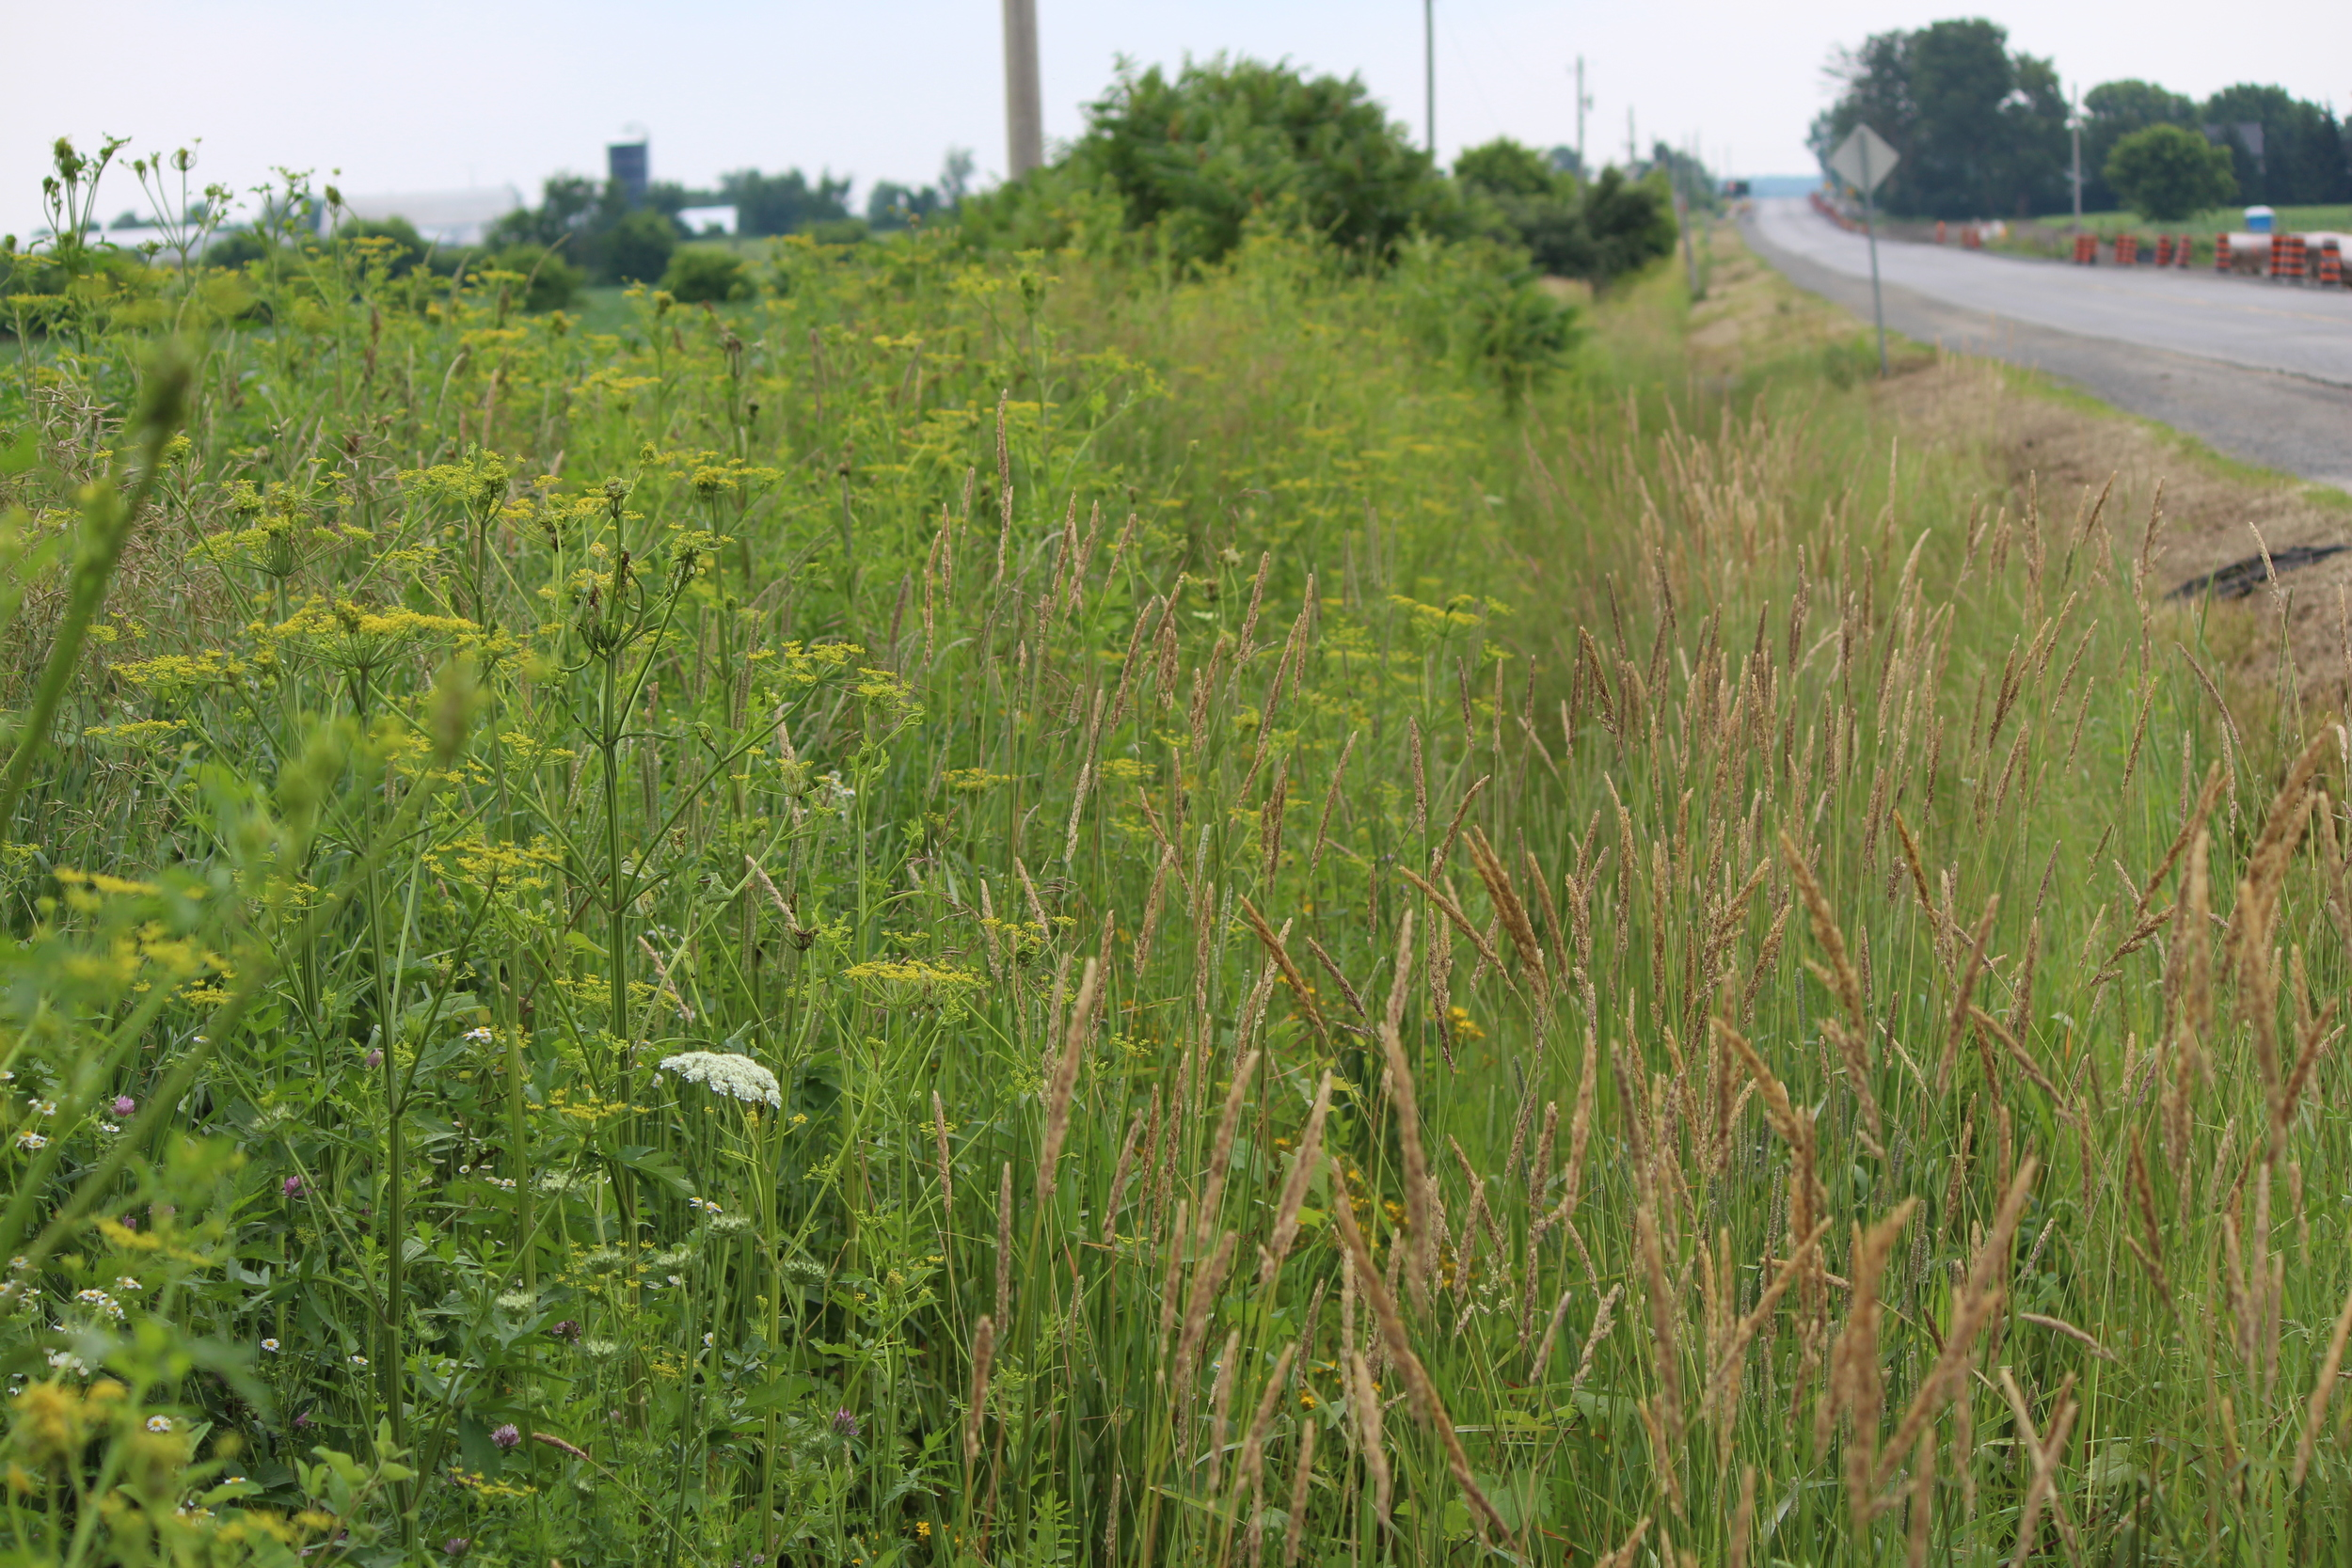 A common sight in roadside ditches throughout Rideau-Goulbourn.